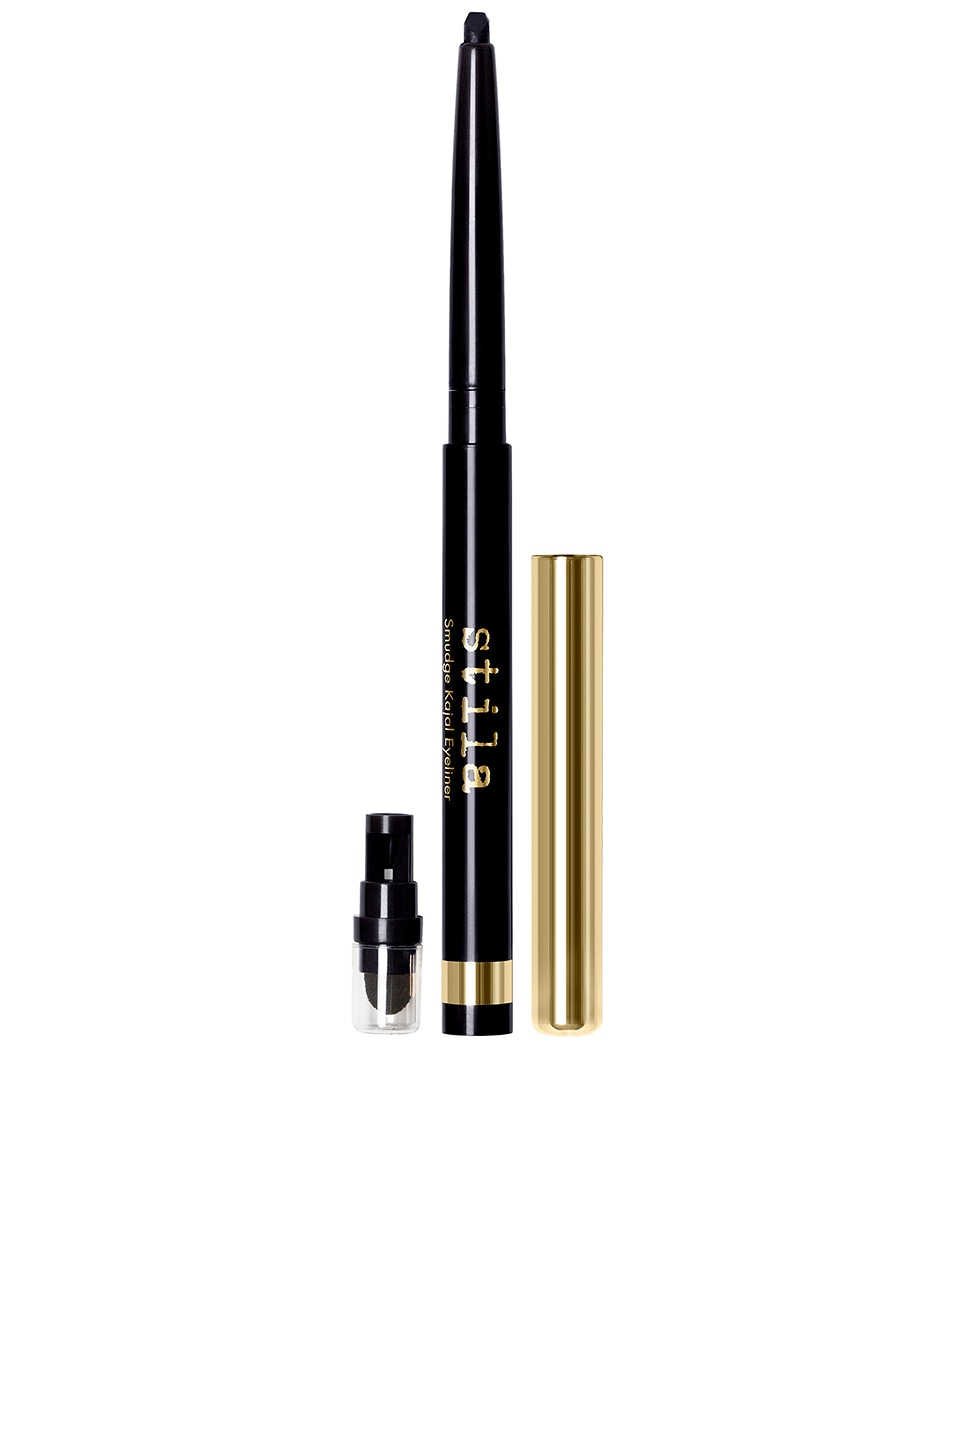 Stila Smudge Kajal Eye Liner in Intense Black